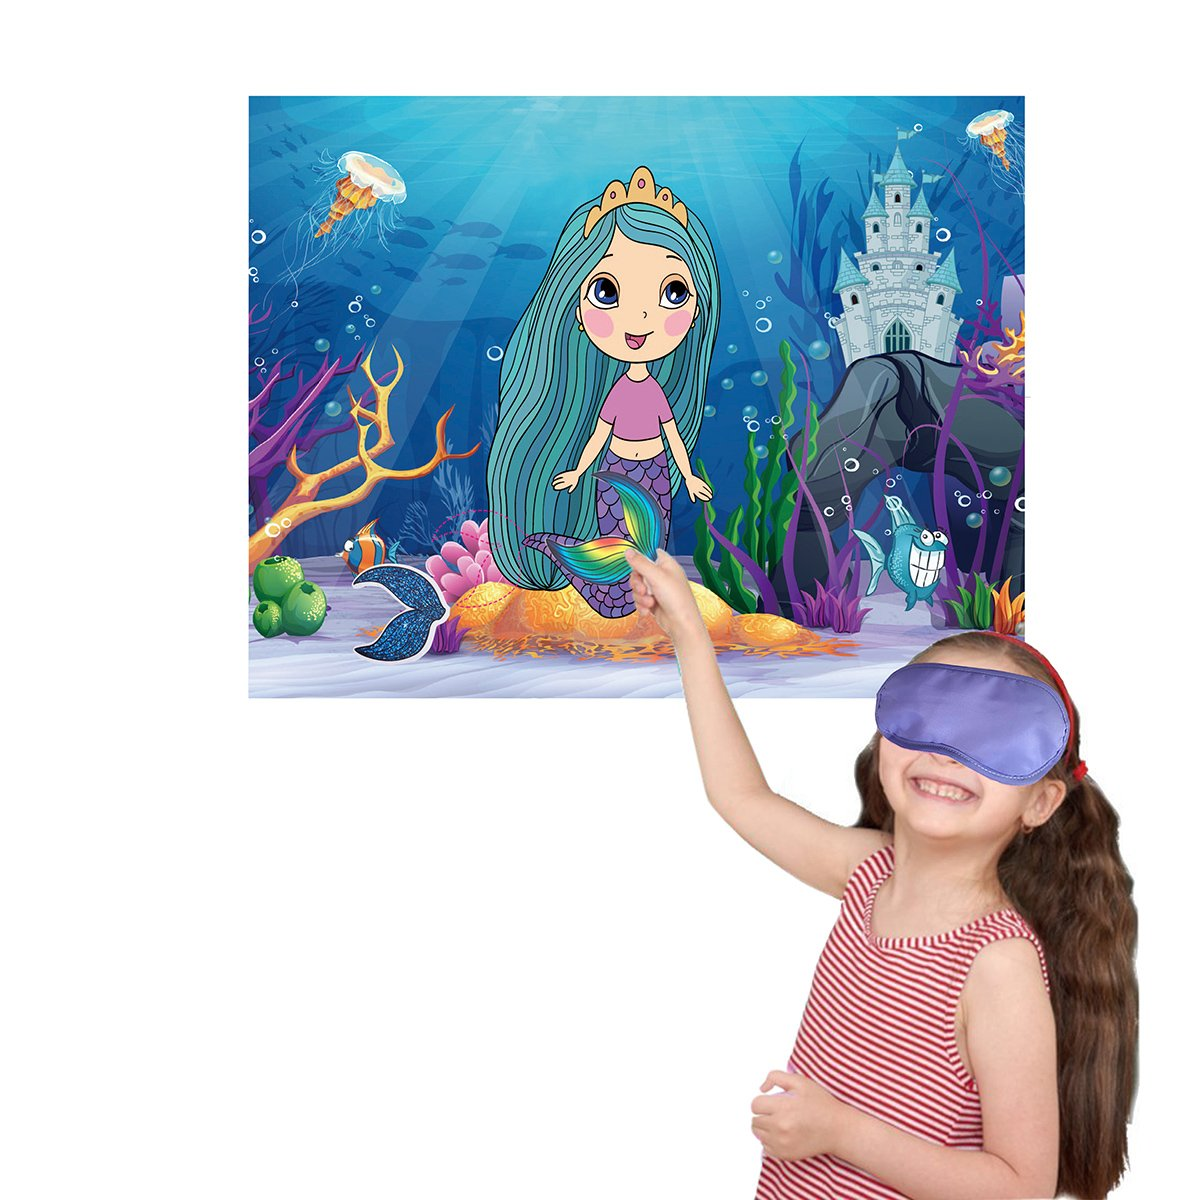 M MISS FANTASY Mermaid Party Supplies Pin the Tail on the Mermaid Under the Sea Party Games for Kids with 24 Reusable Tails Good for Big Parties